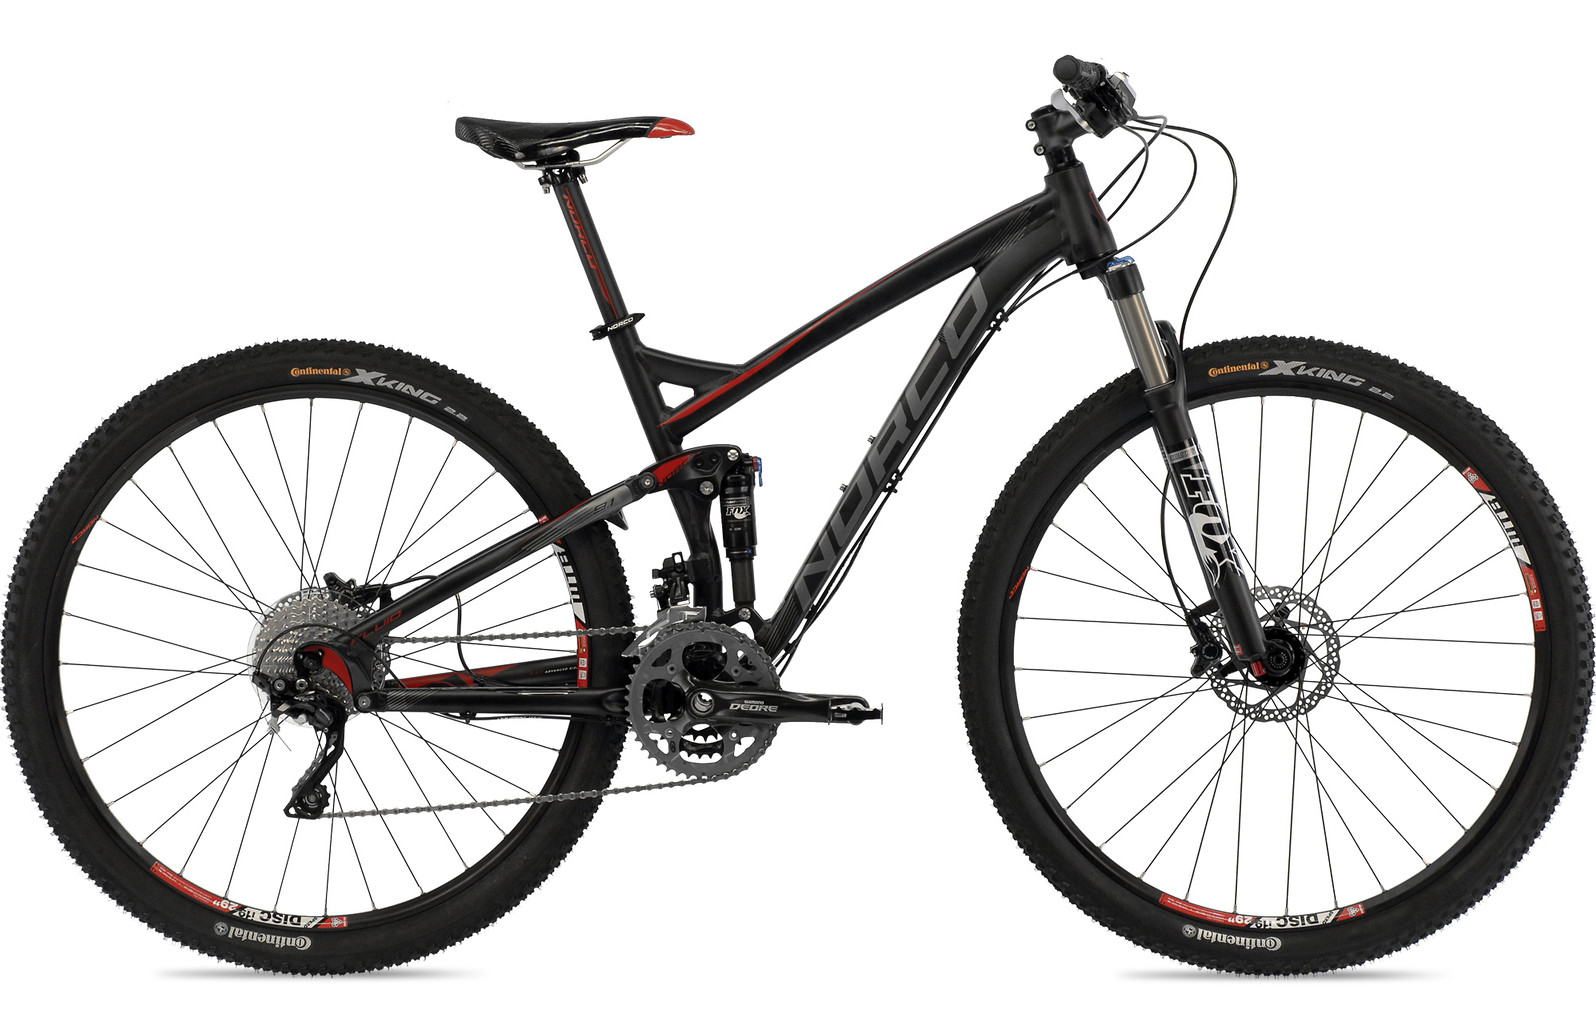 bike - 2014 Norco Fluid 9.1 - black/red